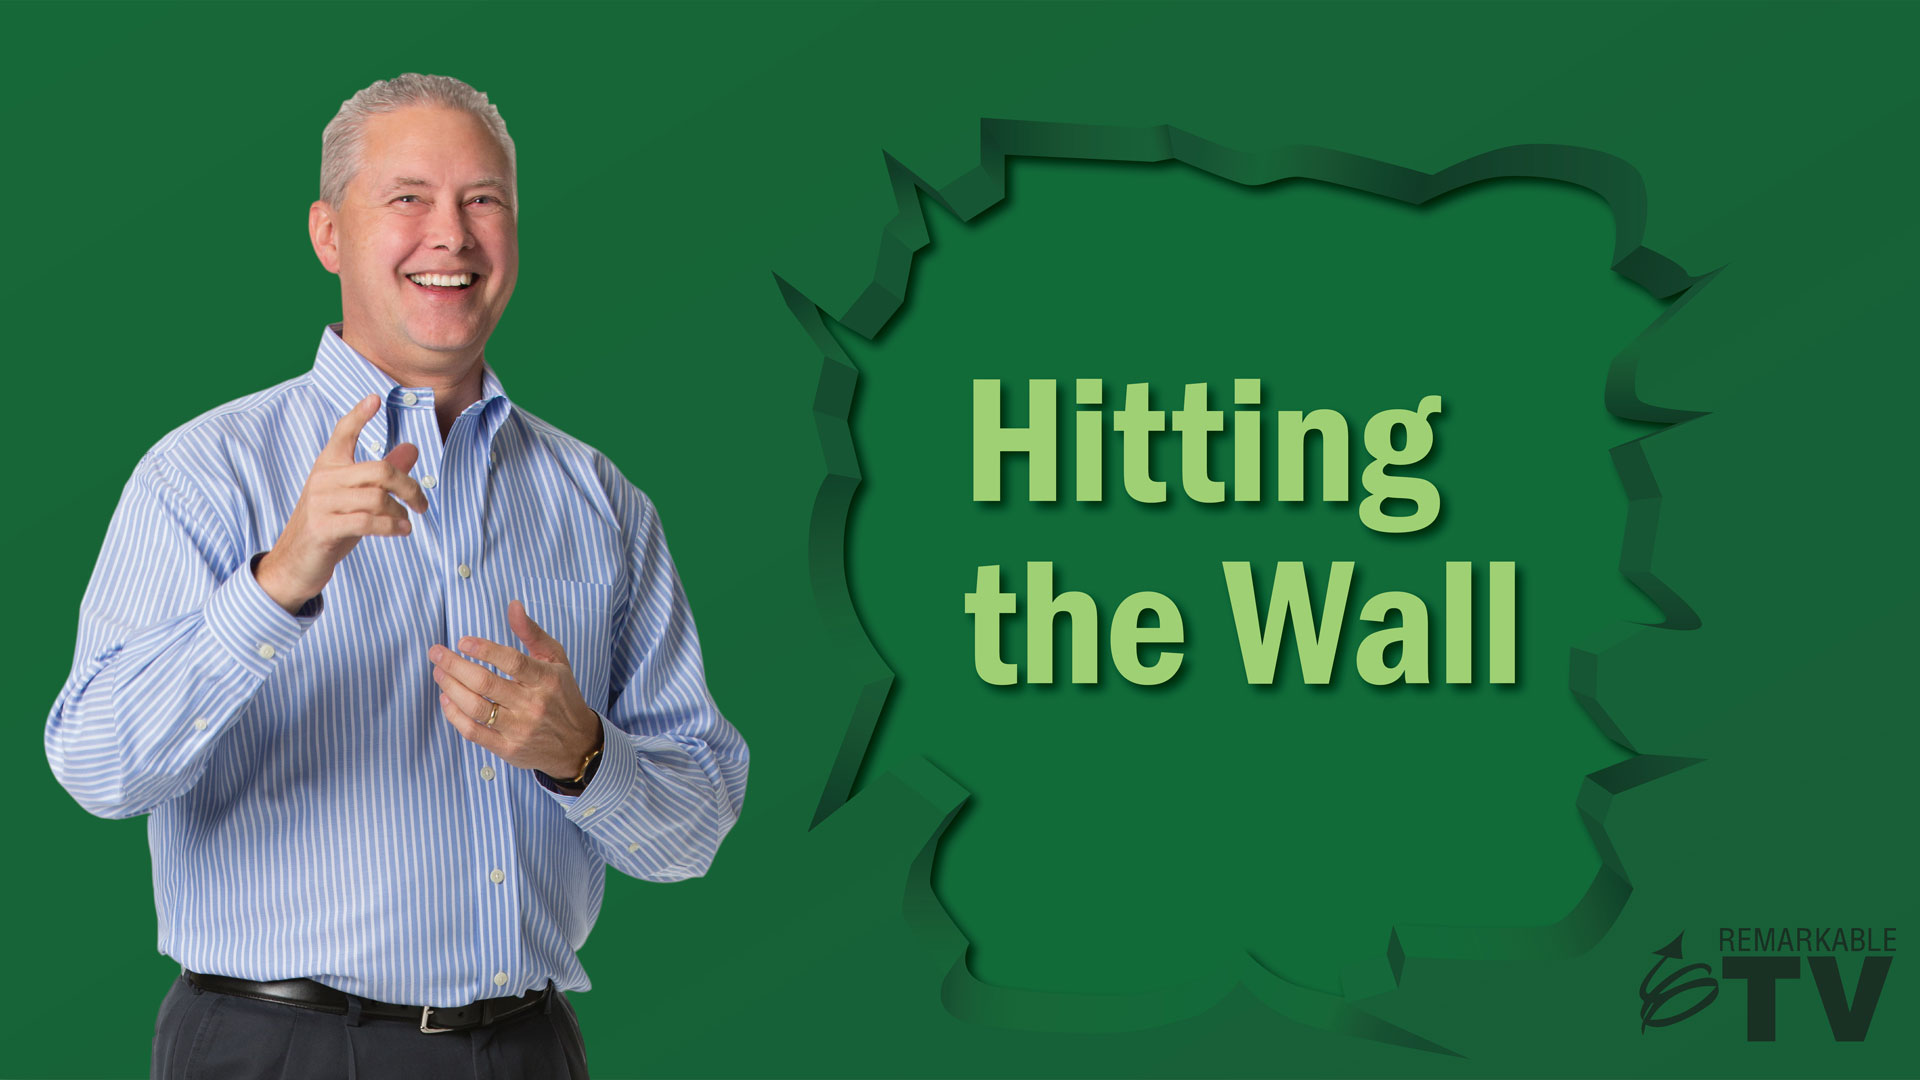 A video about hitting the productivity wall with Kevin Eikenberry